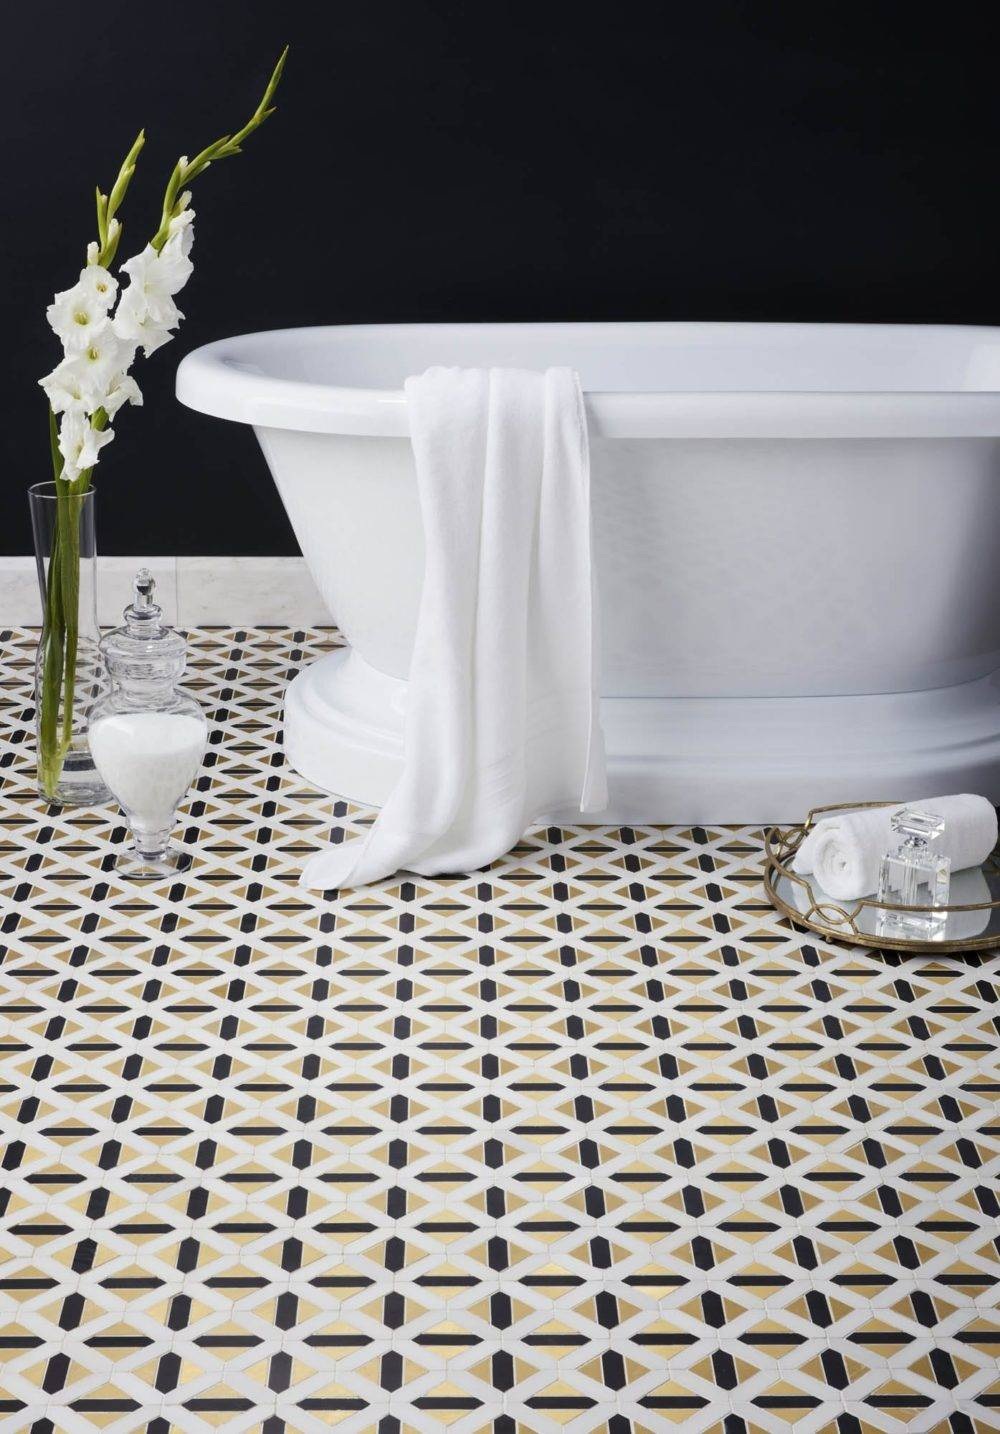 Gilded Glamour How To Tile In Art Deco